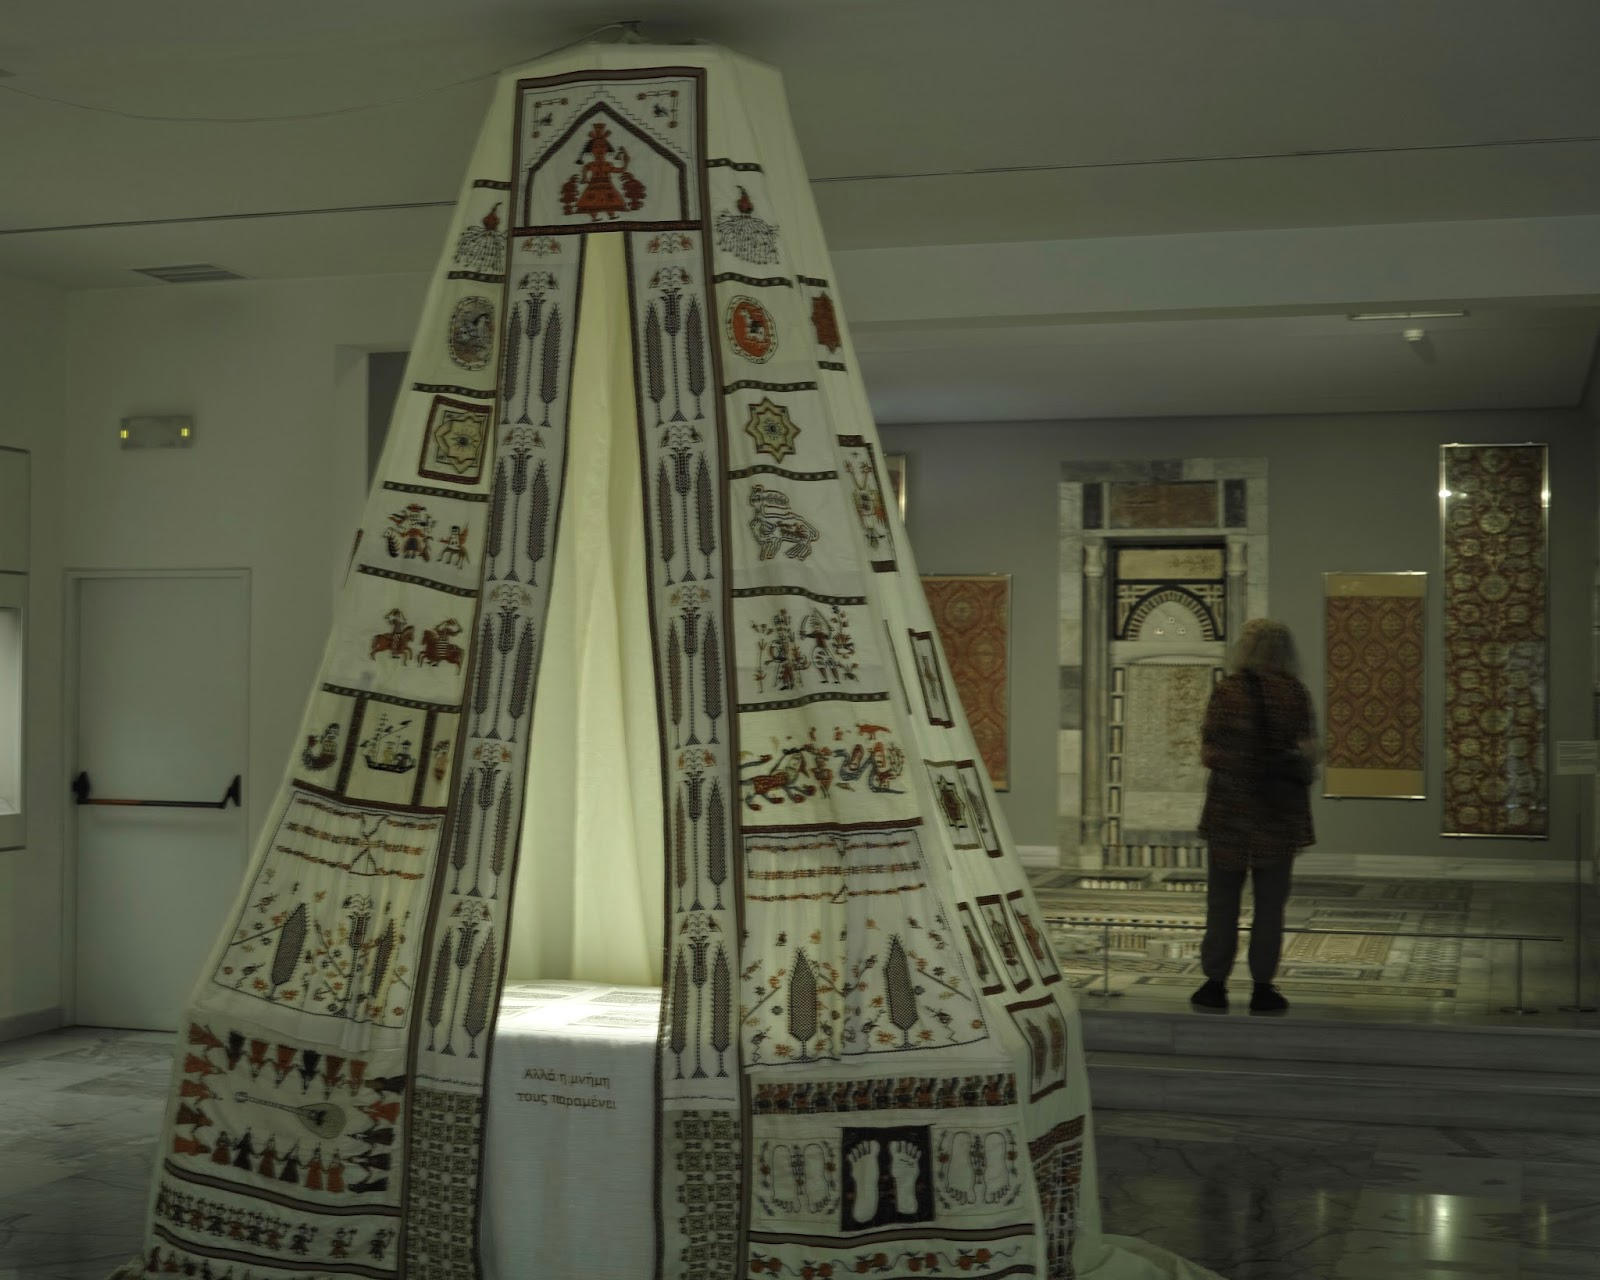 Carole And I Saw The Tent Installed By Mounira Al Solh In The Islamic  Museum It Included Works And Statements By Yazidi Women